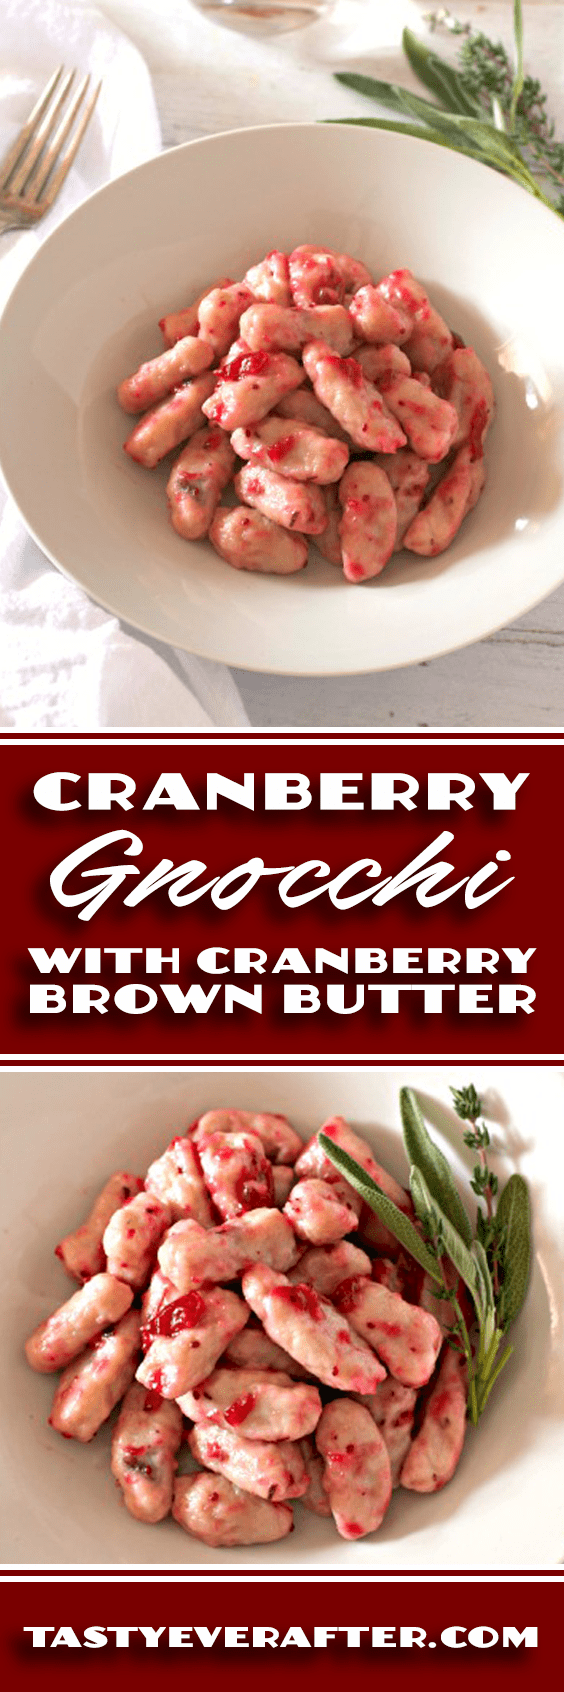 Cranberry Gnocchi with Cranberry Brown Butter